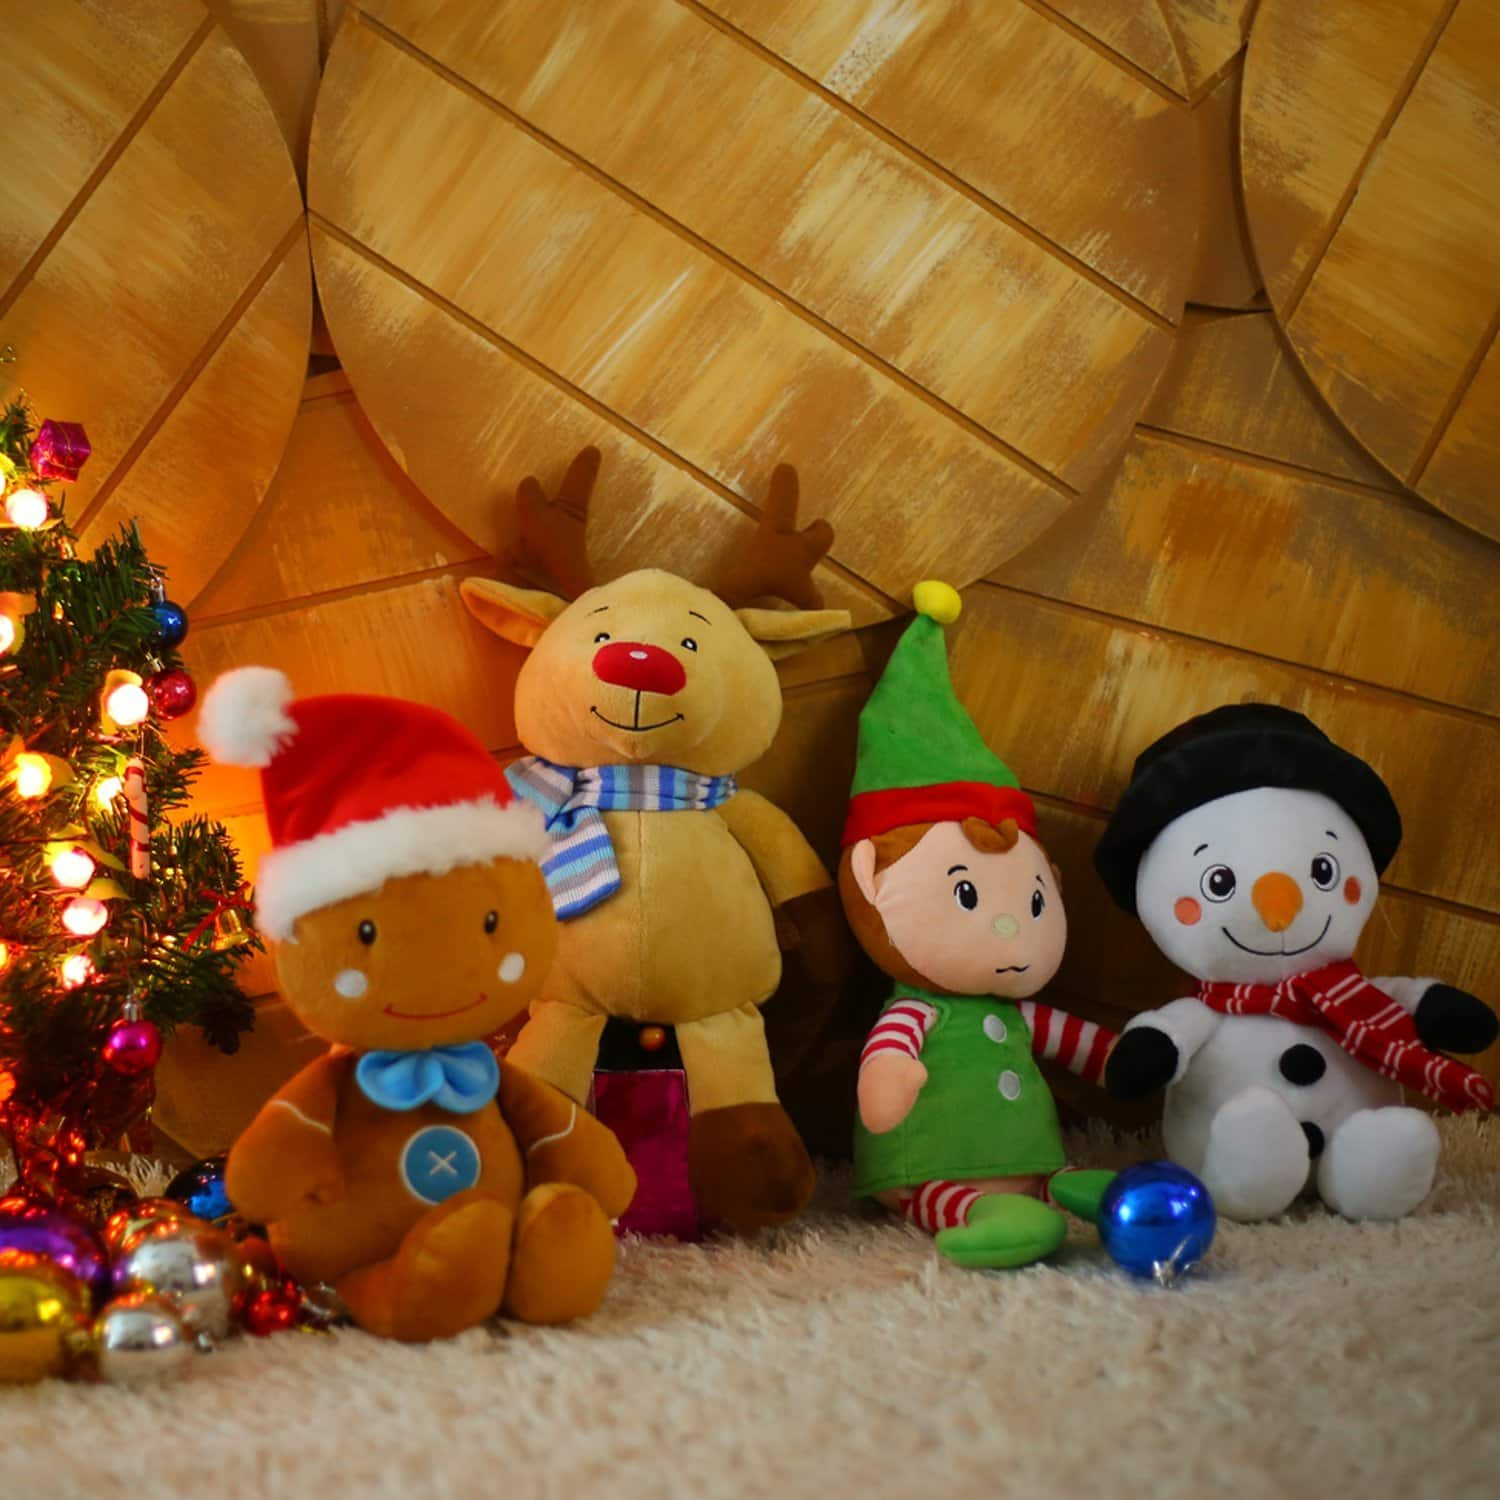 Christmas Plush Toy Decorations - Santa/Snowman/Elk/Penguin/Elf/Gingerbread Man - $5.99 (F/S Prime)